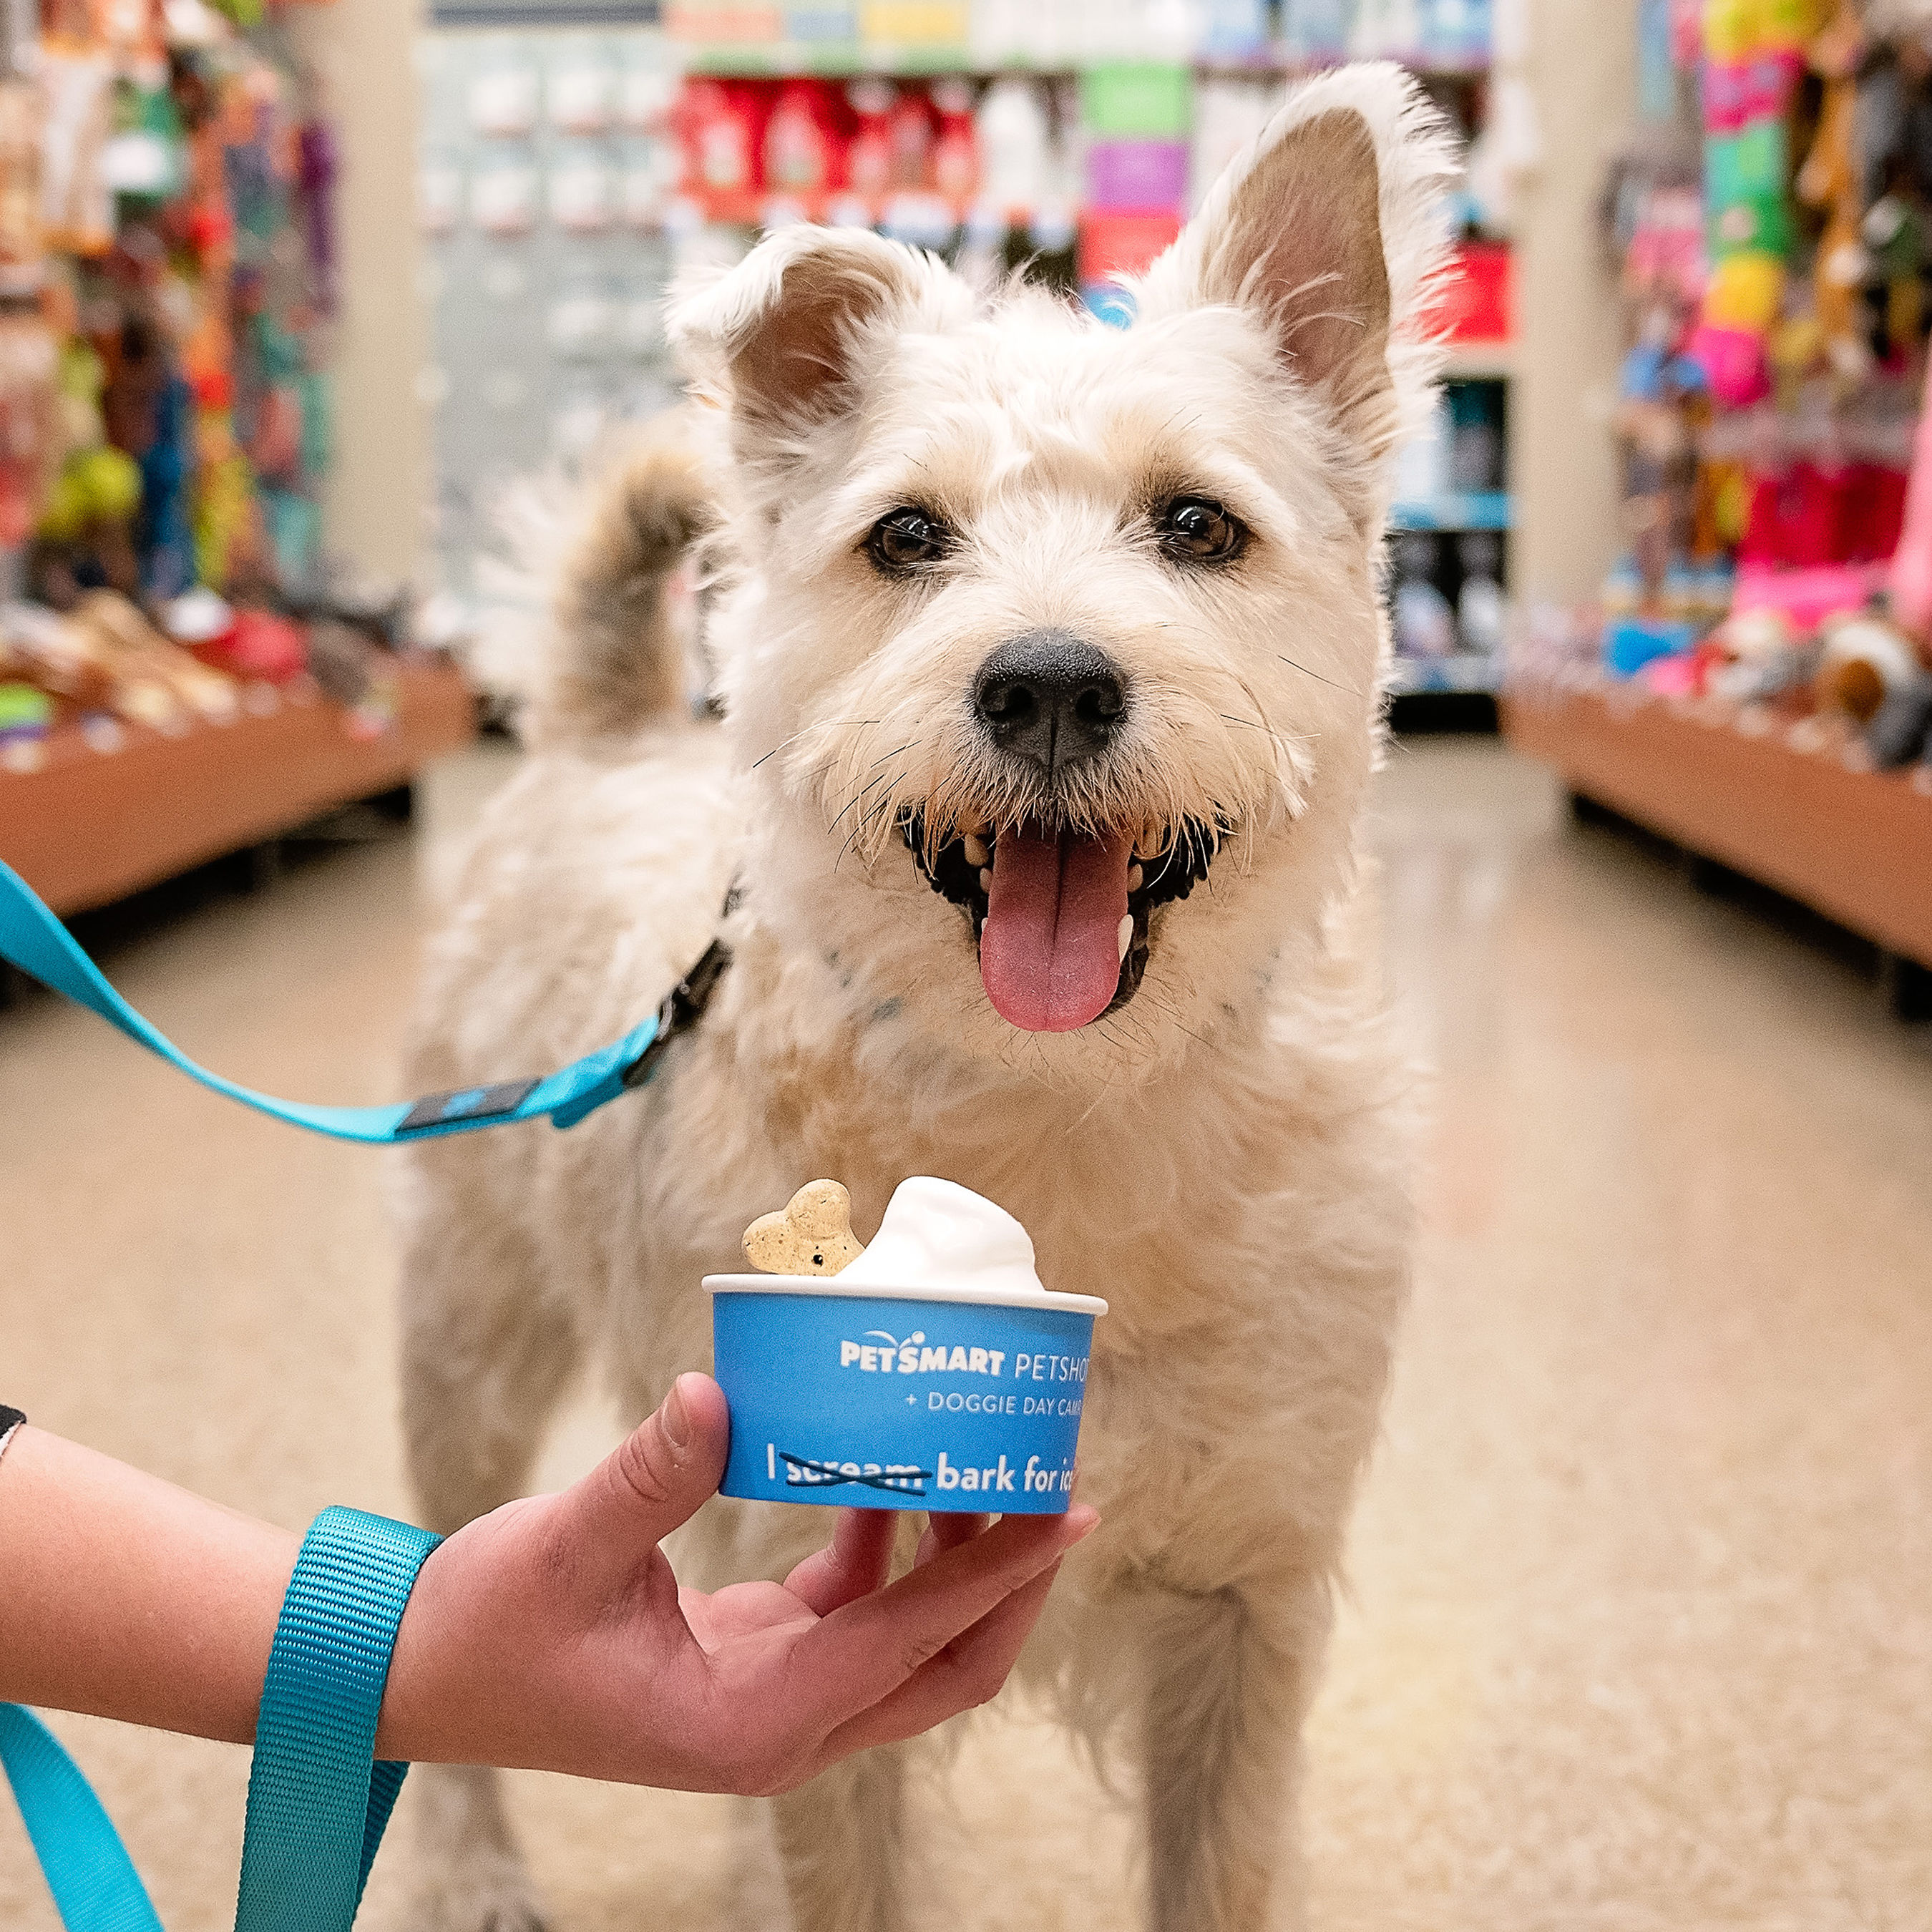 PetSmart Is Giving Out Free Dog-Friendly Sundaes to Pups to Celebrate National Ice Cream Month